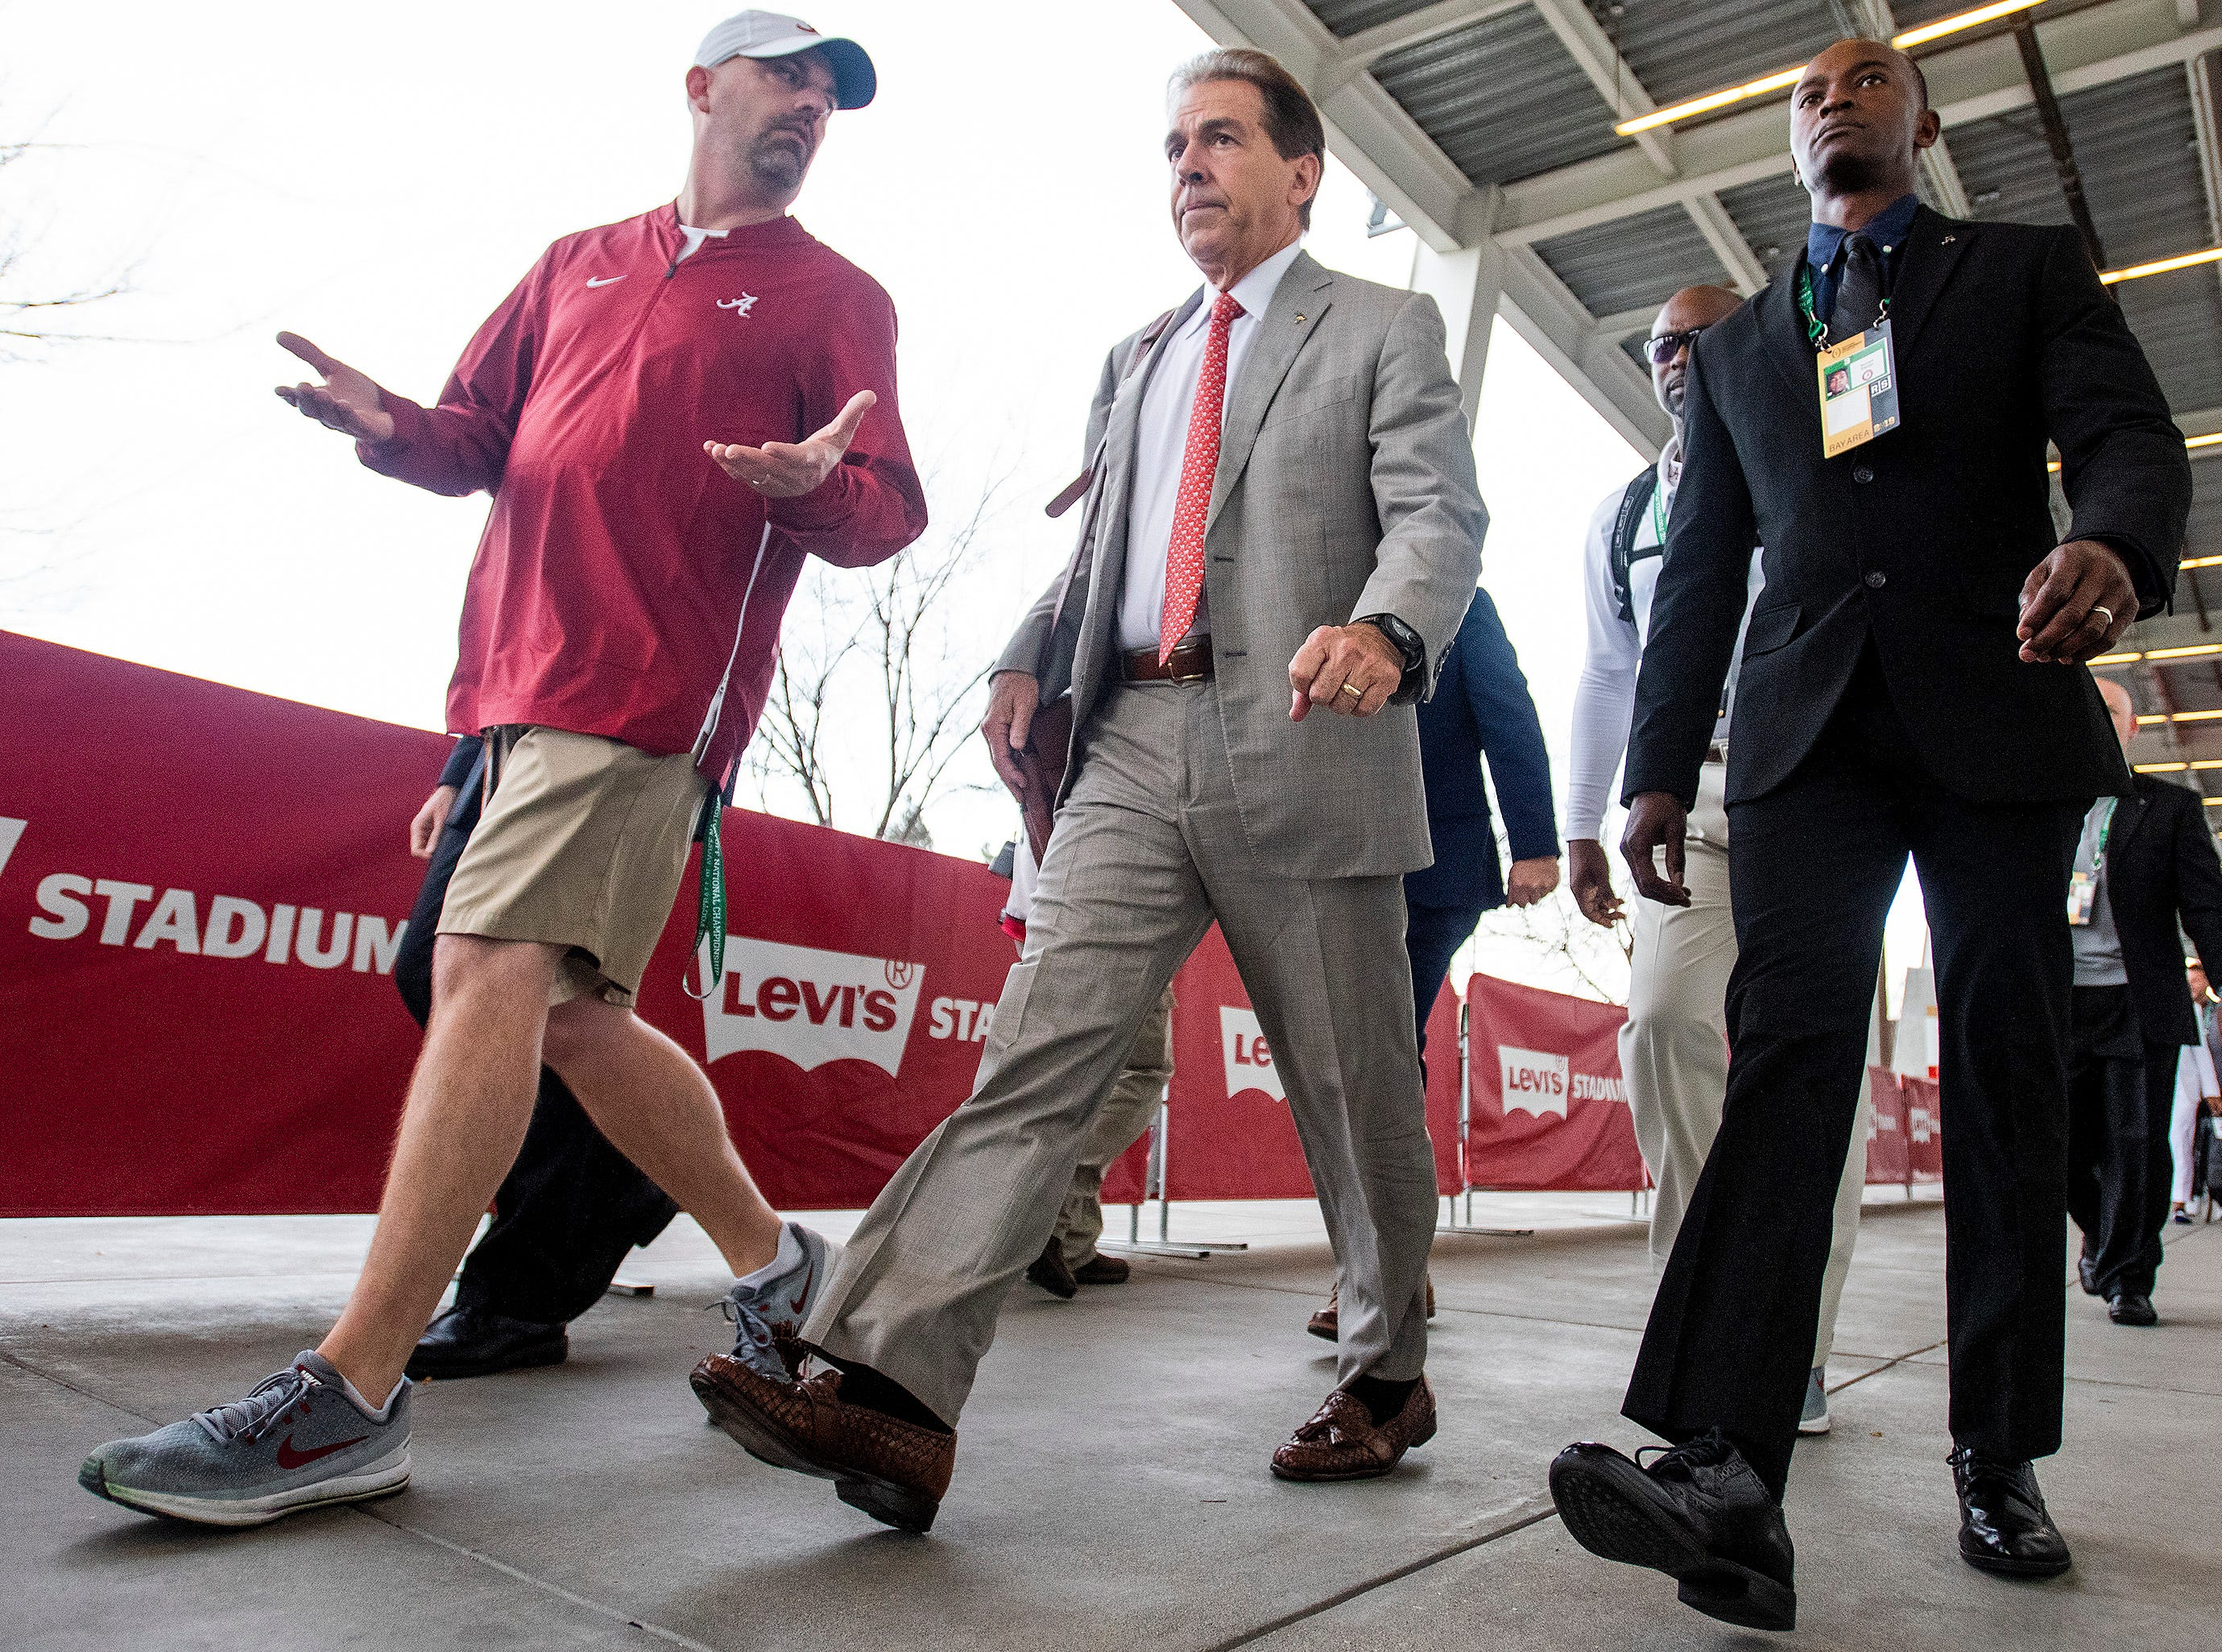 Alabama head coach Nick Saban arrives for the College Football Playoff National Championship game at Levi's Stadium in Santa Clara, Ca., on Monday January 7, 2019.